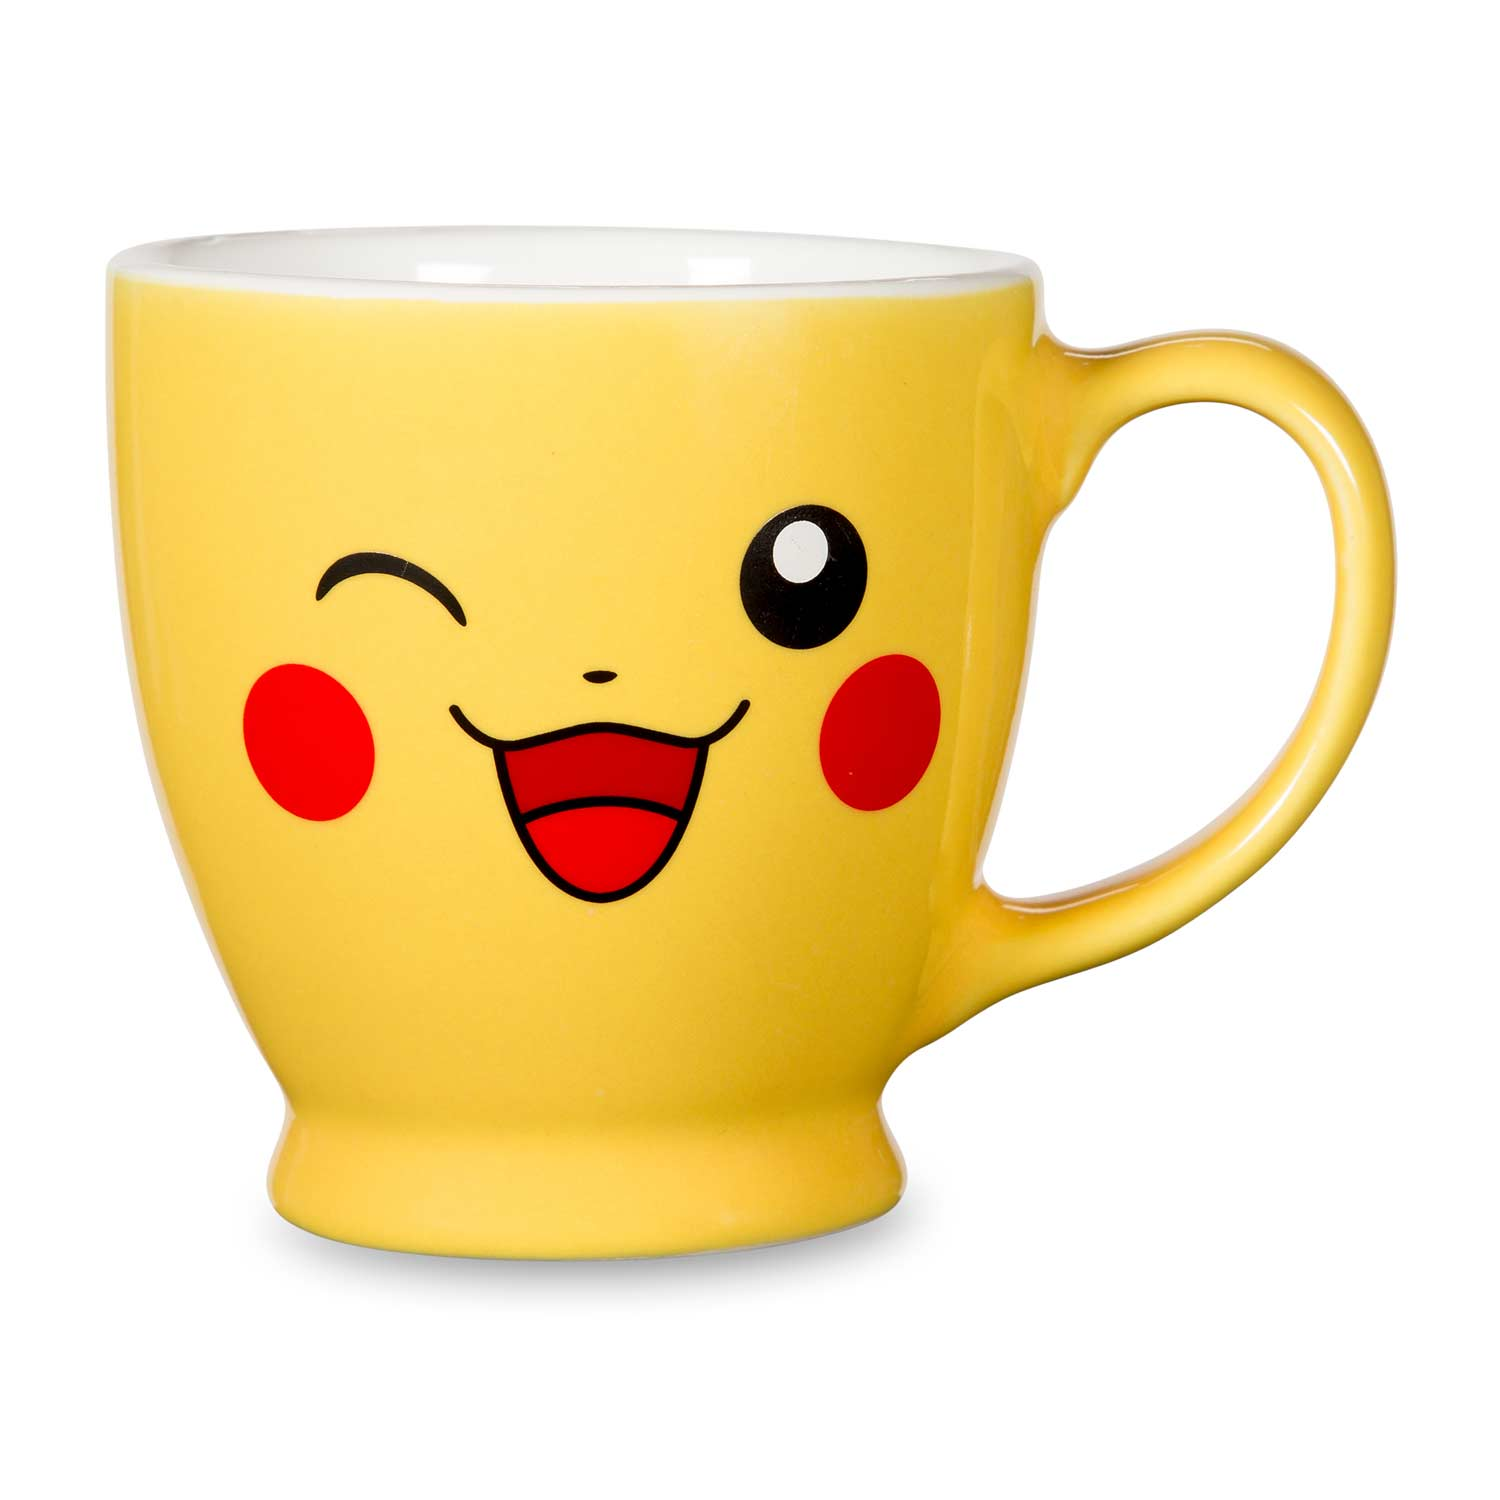 pikachu 12 oz mug big face made in usa pok mon center original. Black Bedroom Furniture Sets. Home Design Ideas